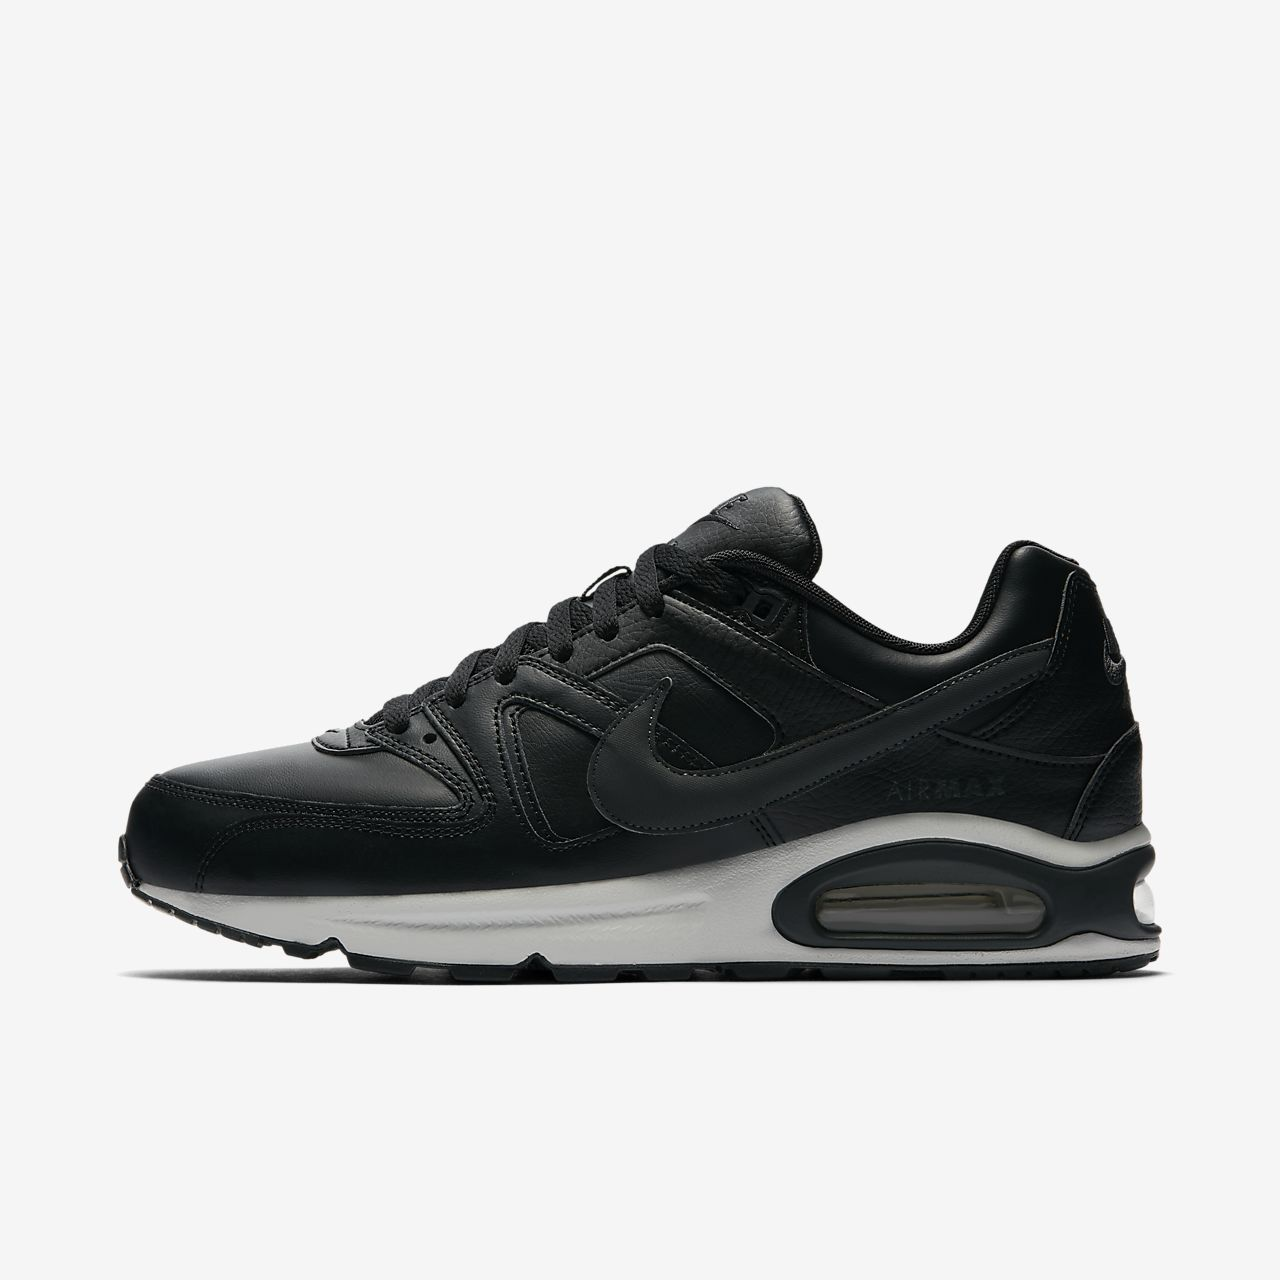 sneakers for cheap eeab2 954b1 ... Chaussure Nike Air Max Command pour Homme